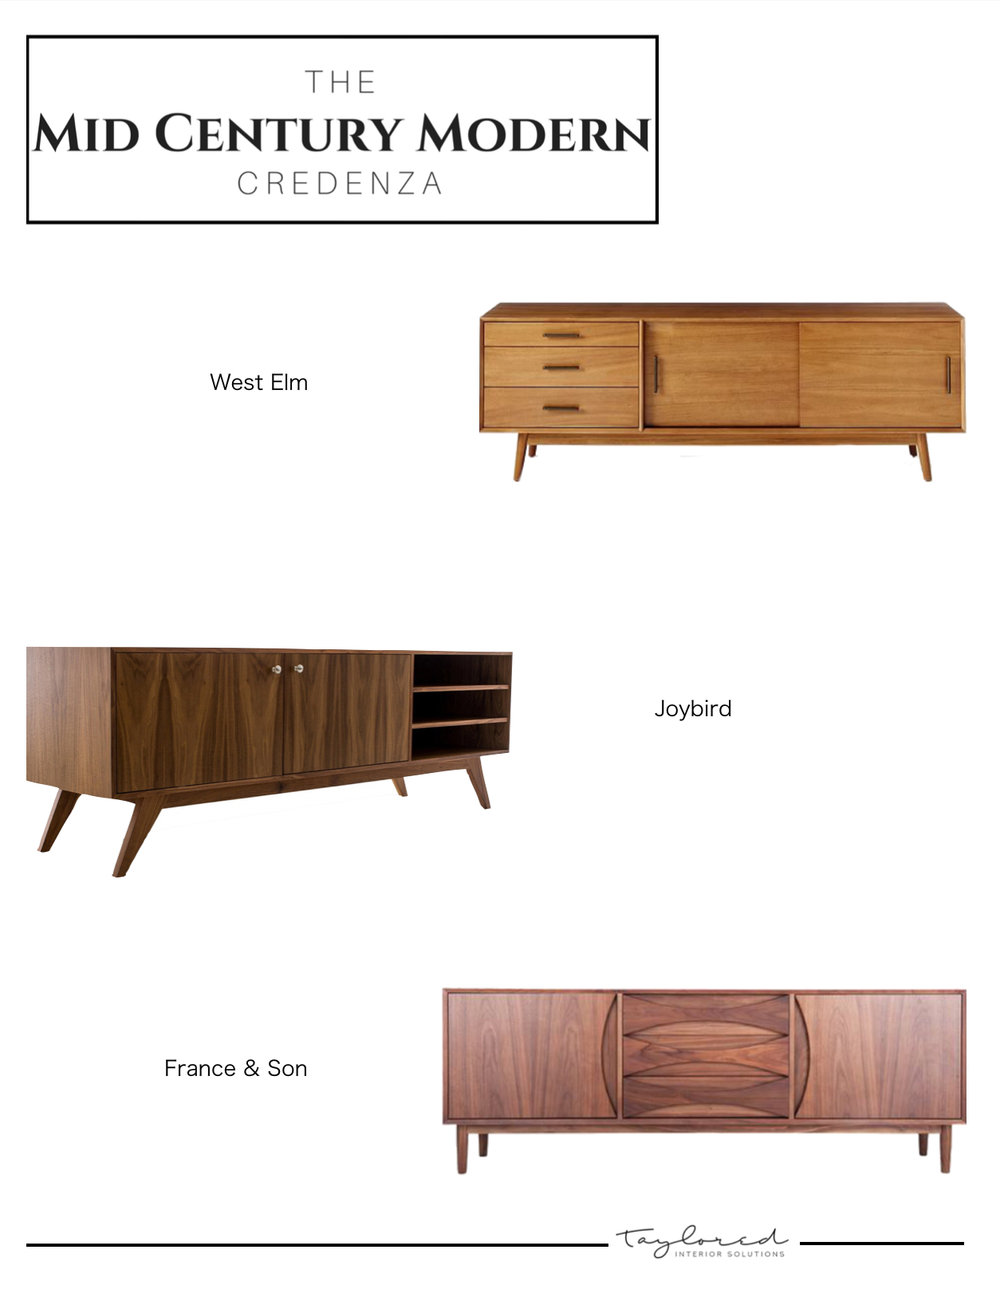 West Elm credenza:  https://www.westelm.com/products/mid-century-media-console-acorn-h1493/?pkey=cconsoles-media-storage-cabinets|media-consoles&isx=0.0.1510   Joybird credenza:  https://joybird.com/media-consoles/auden-media-console/   France and Son credenza:  https://www.franceandson.com/collections/storage-shelving-credenzas/products/halvmane-credenza8710